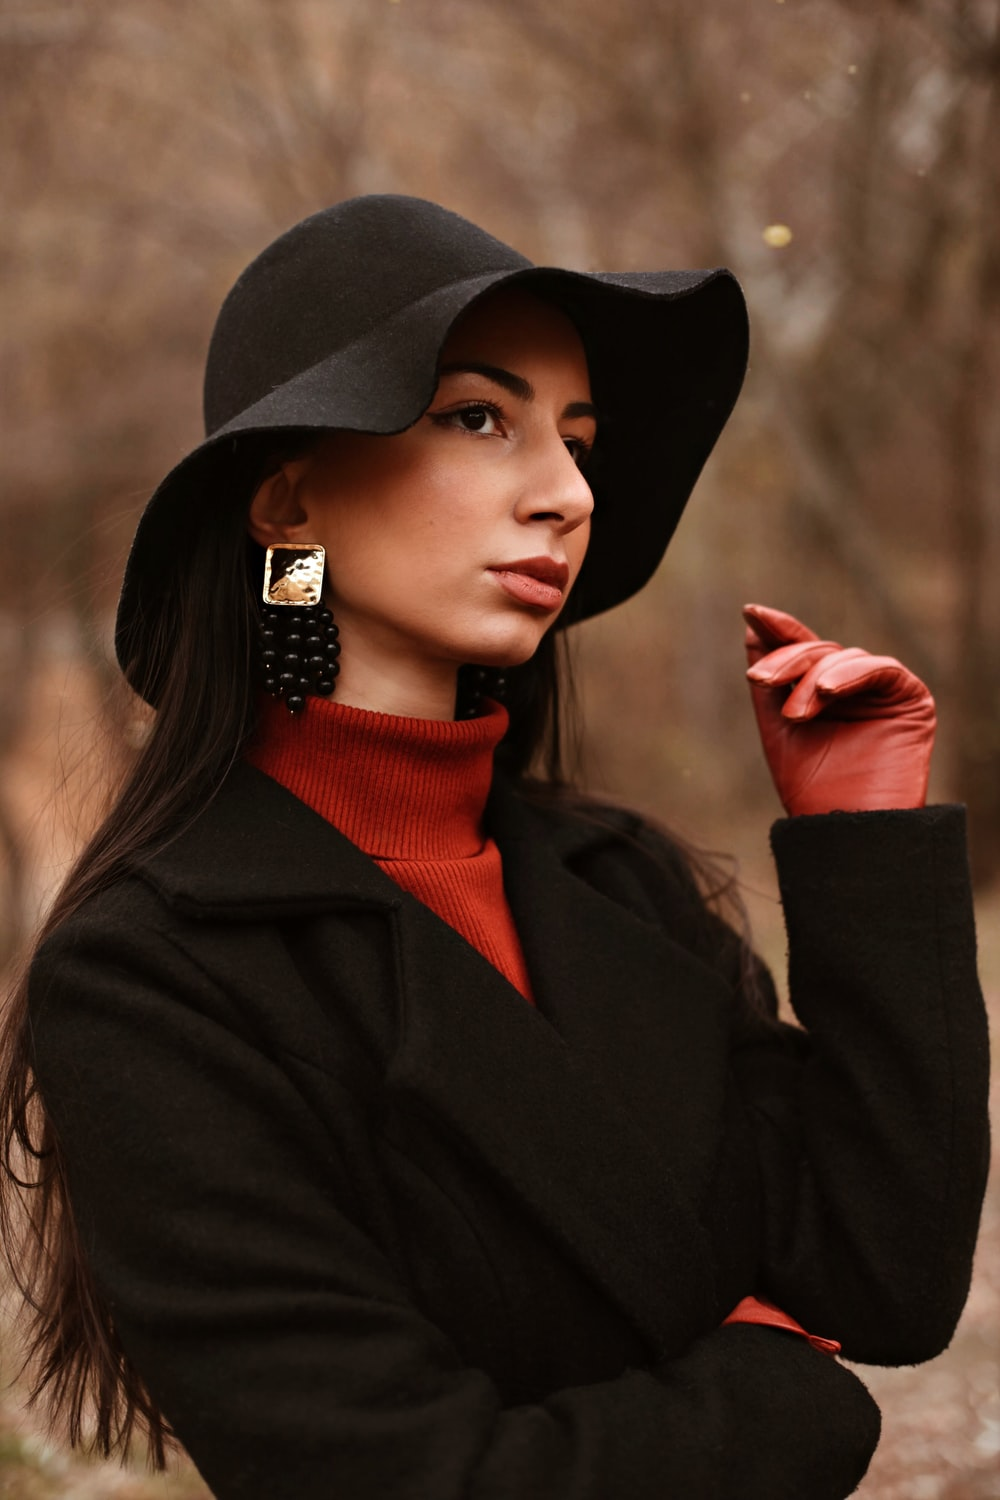 woman in black hat and black coat